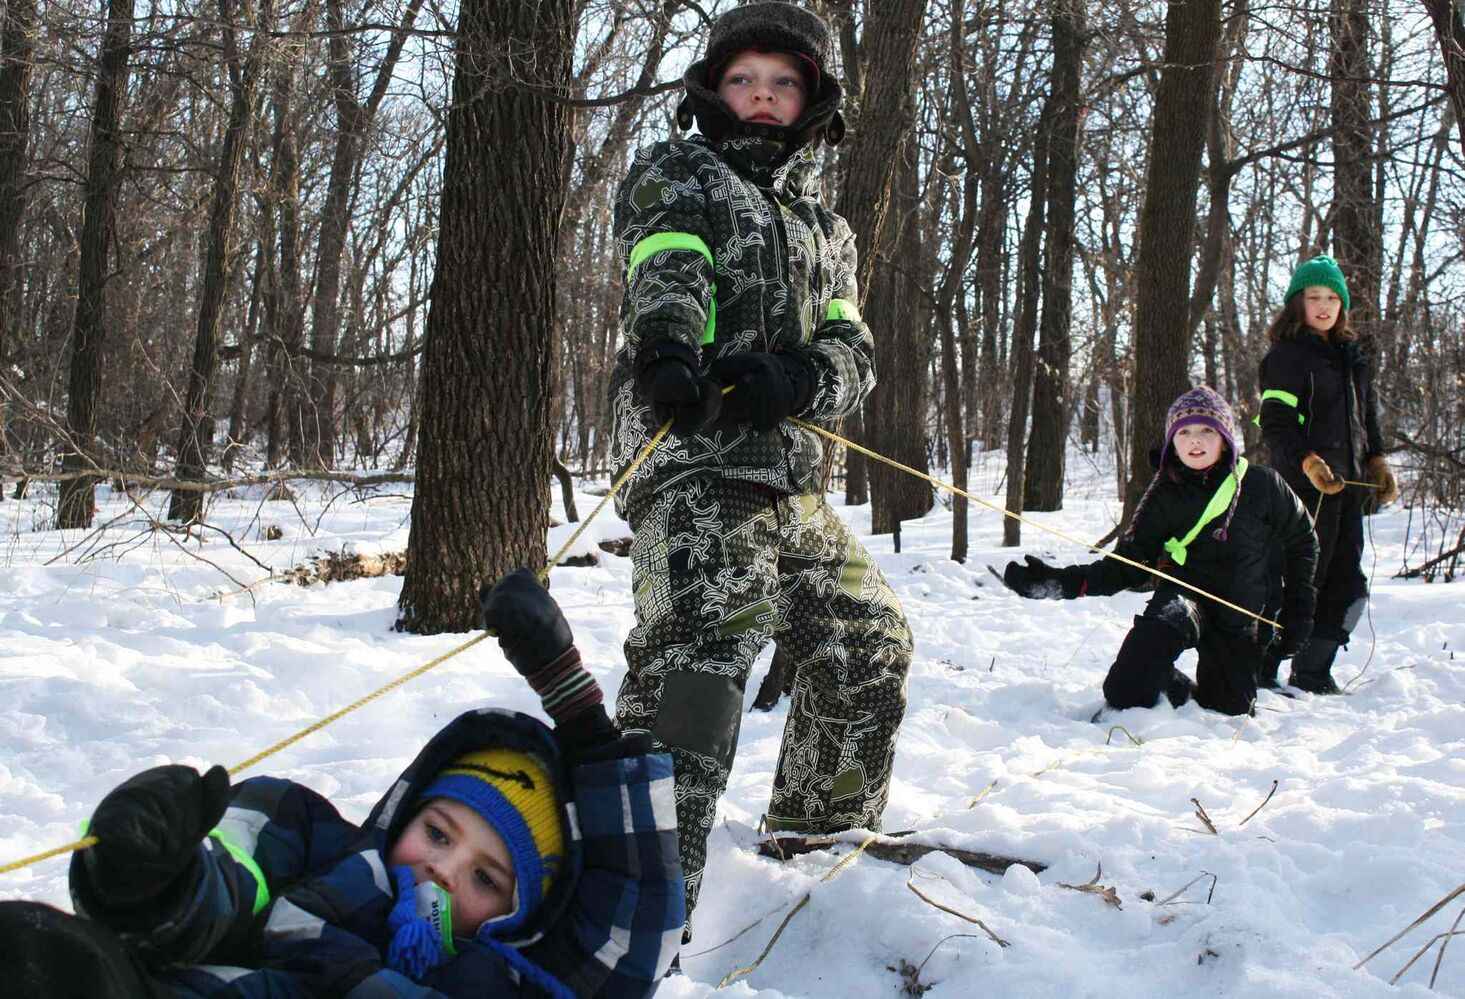 A group of Cub Scouts, who call themselves 'Team People', pull their sled across the ropes course at the 45th Klondike Derby in La Salle, Manitoba on Sunday. (Jessica Botelho-Urbanski / Winnipeg Free Press)